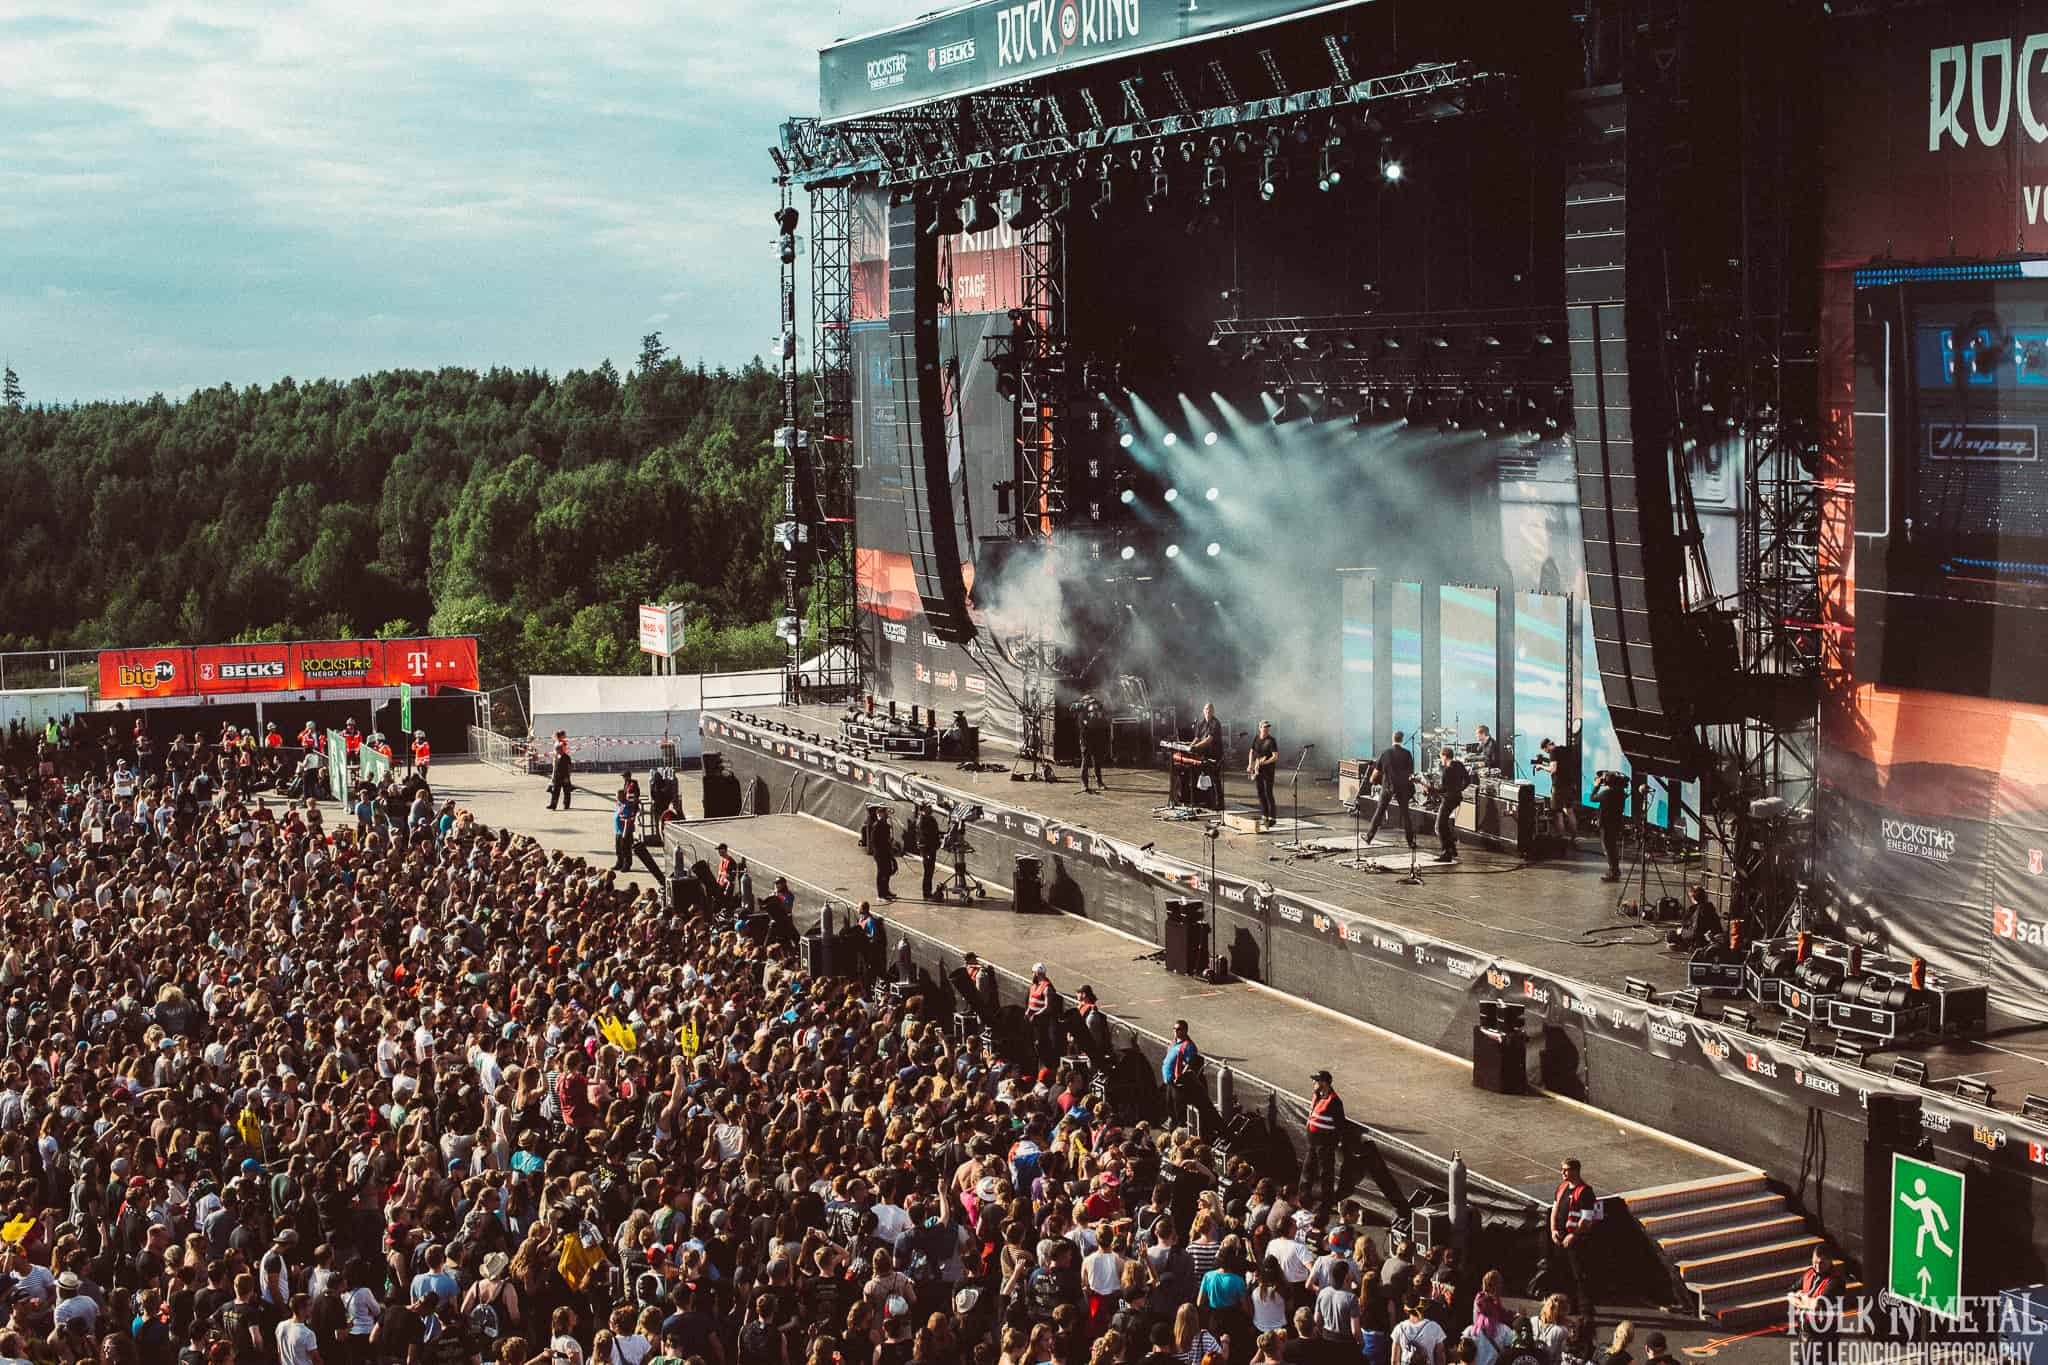 Rock Am ring (2)